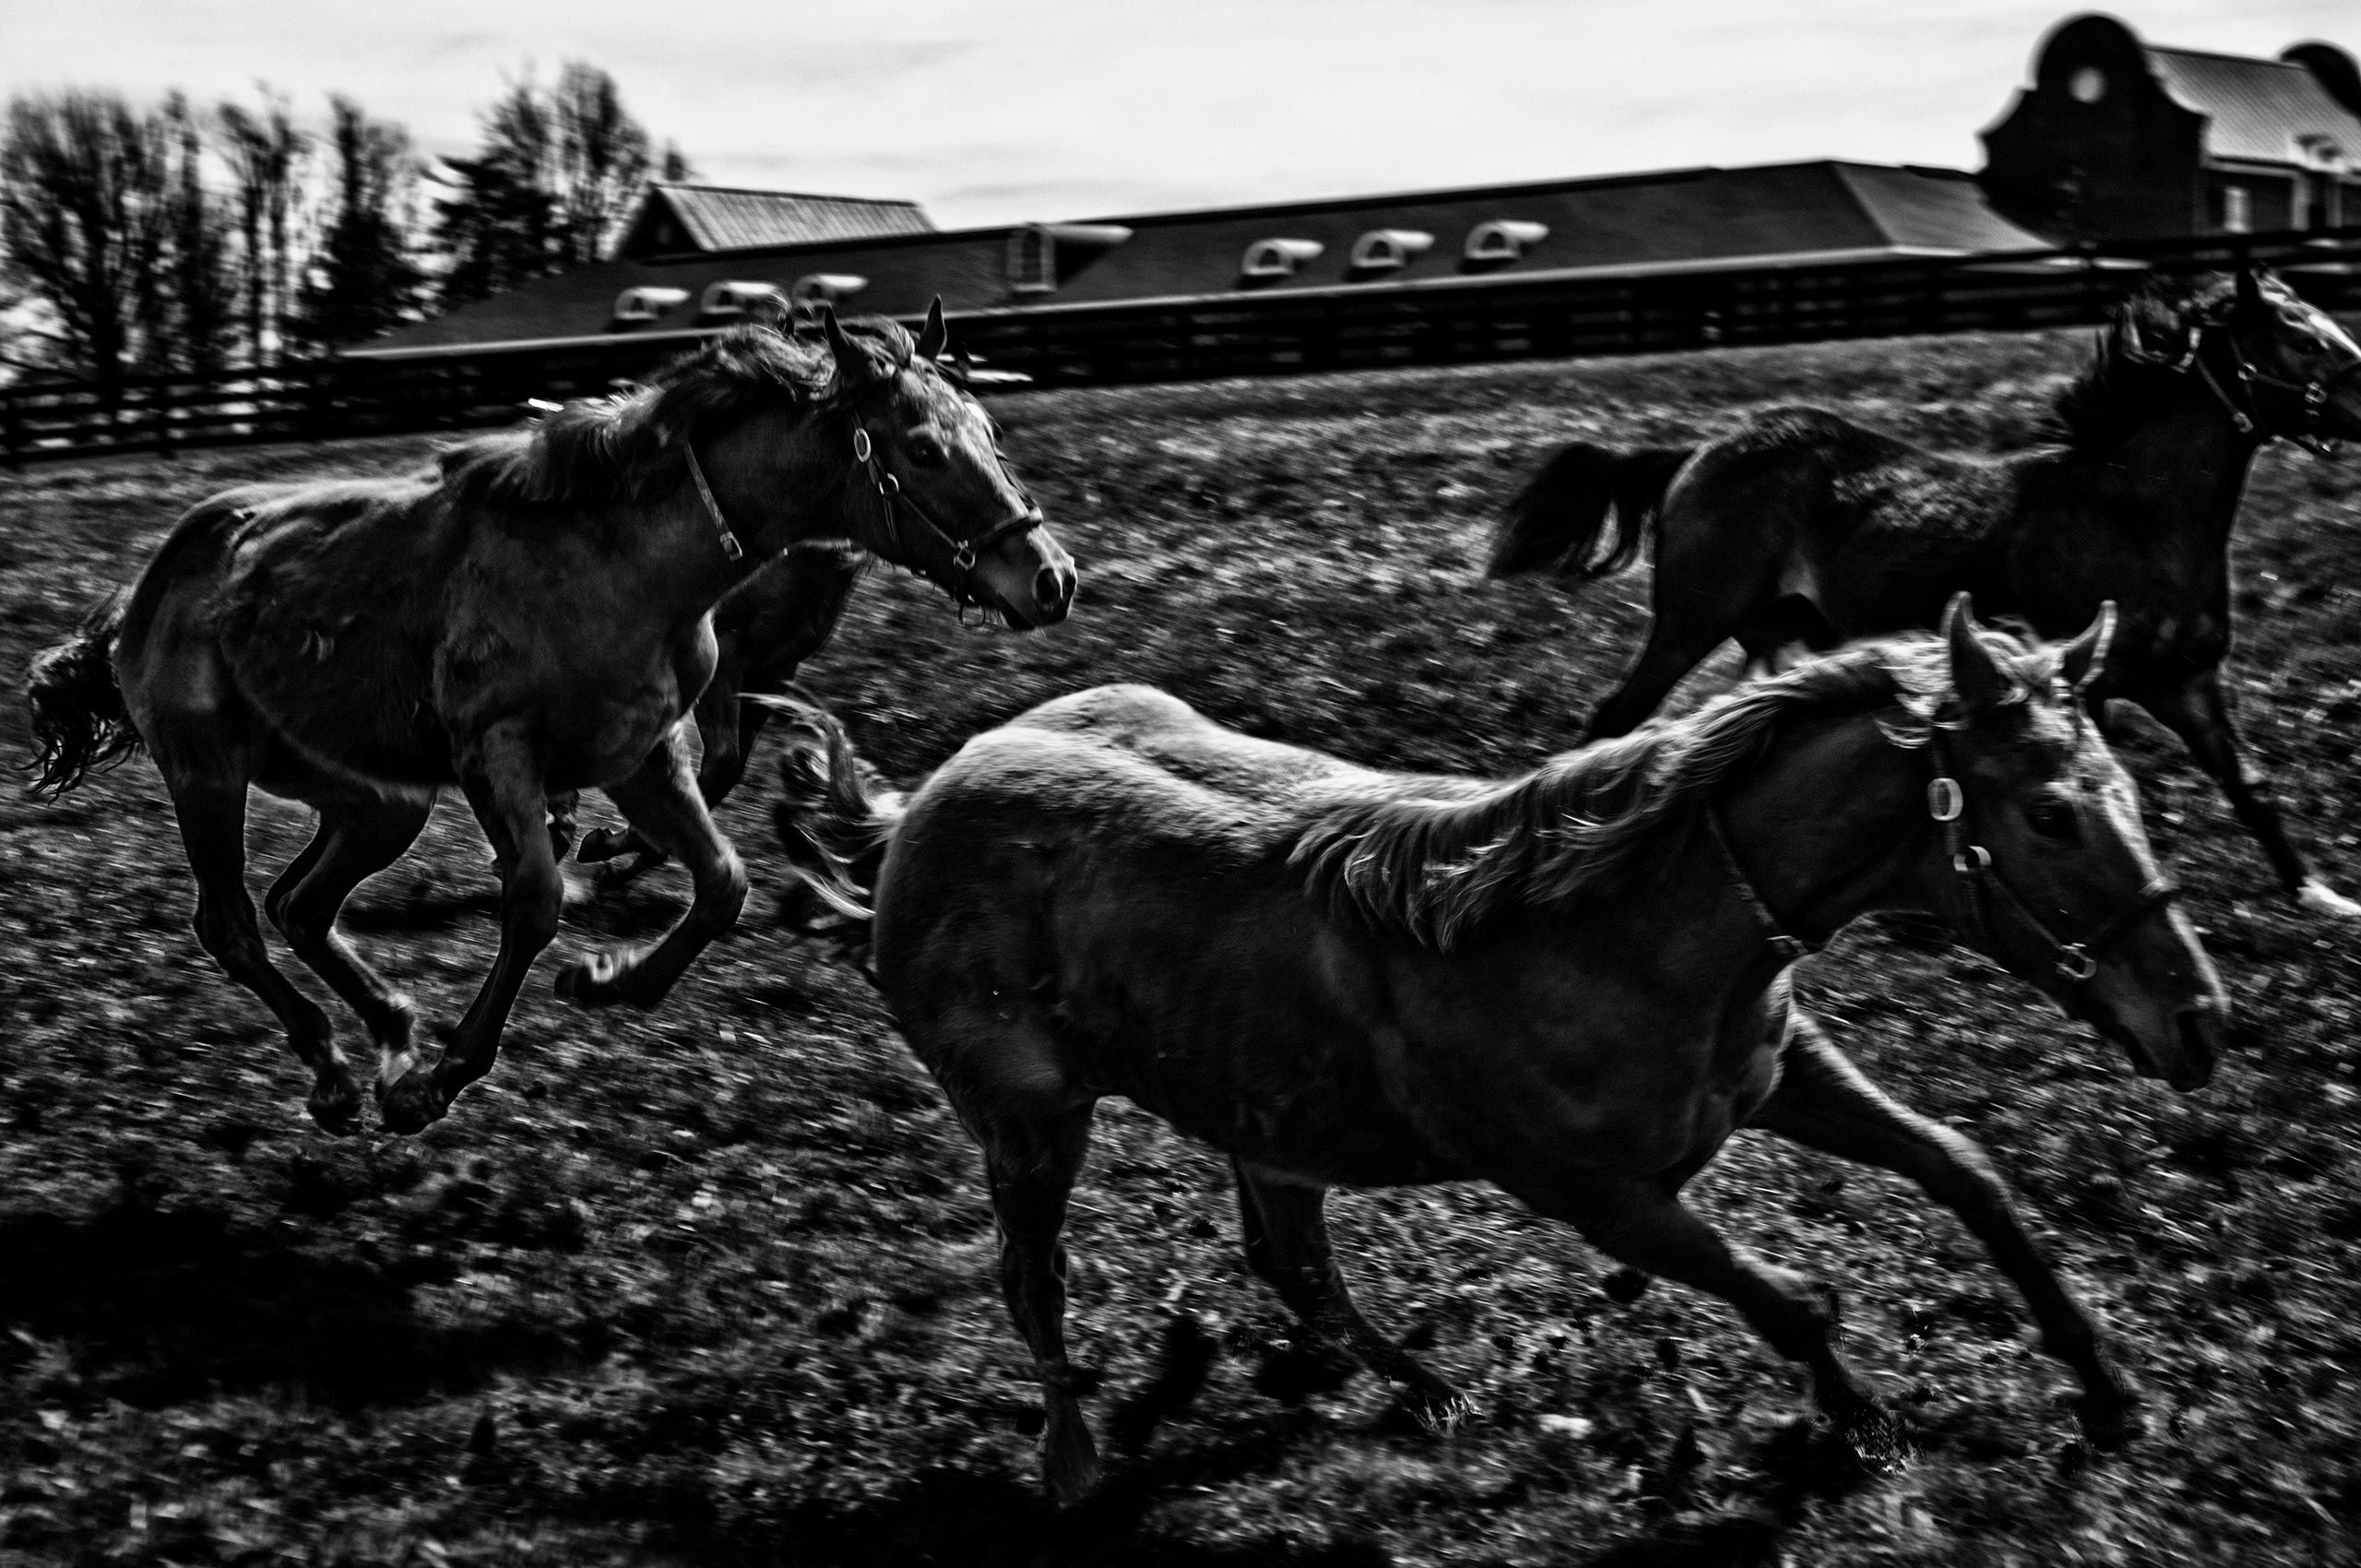 horses-running-free-lexington-kentucky-HenrikOlundPhotography.jpg